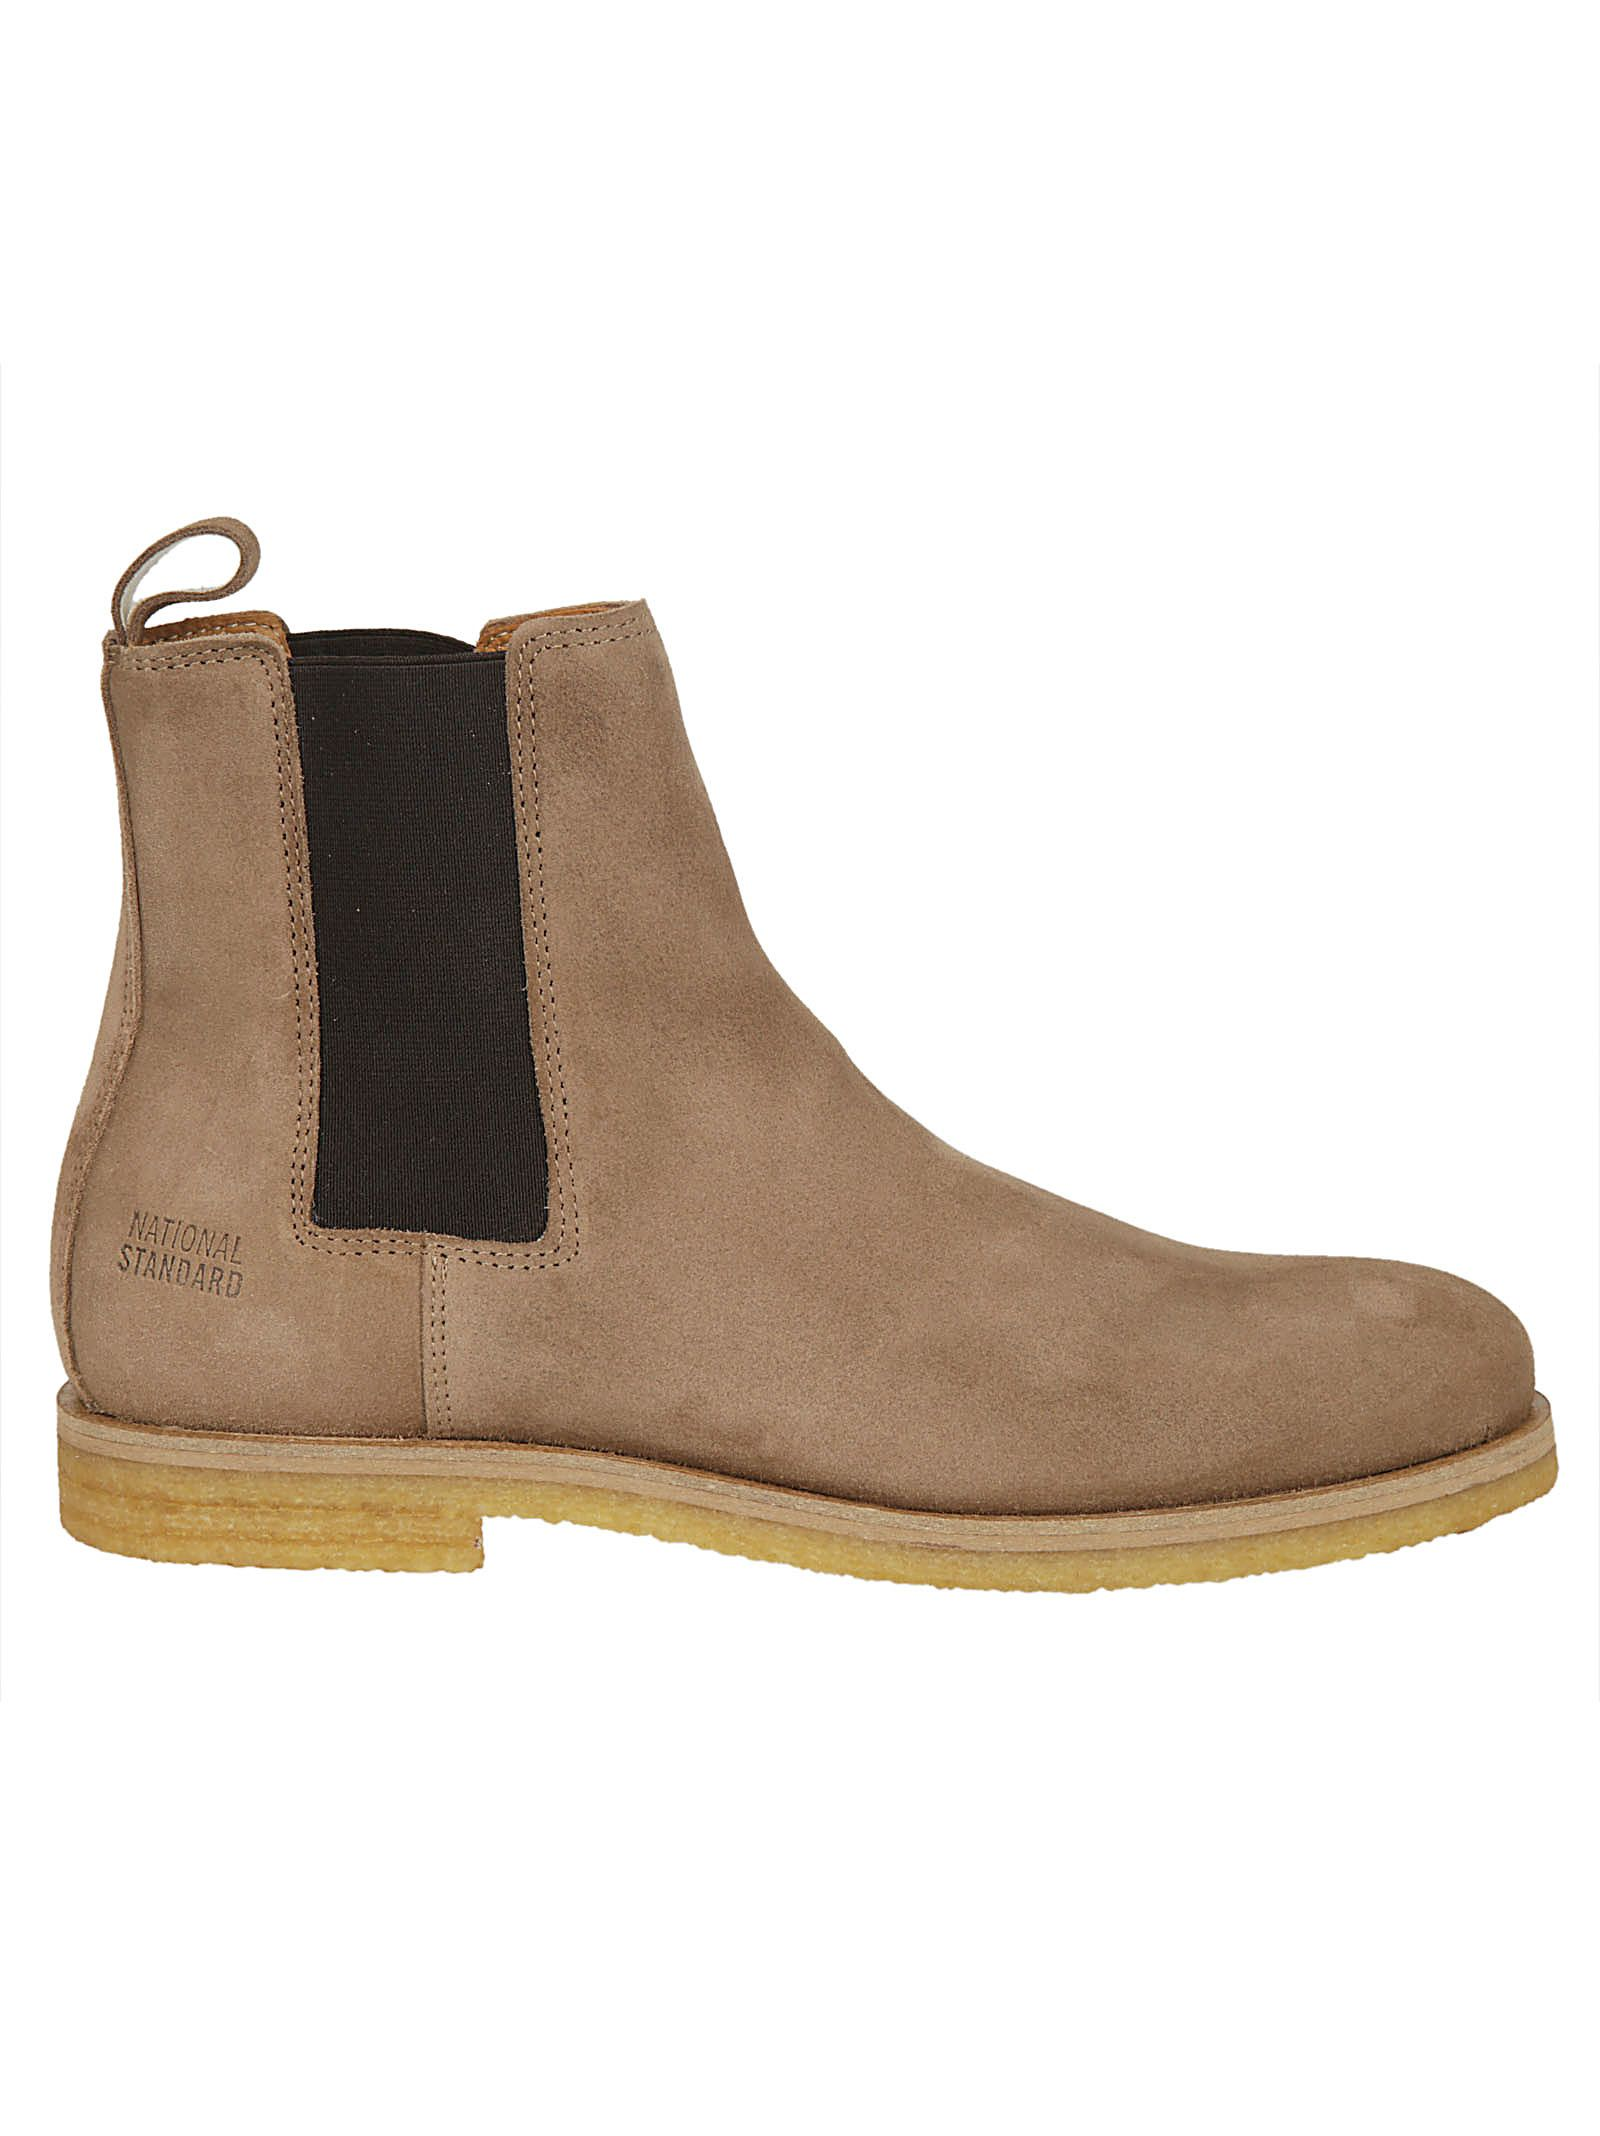 NATIONAL STANDARD Elasticated Side Ankle Boots in Naturale